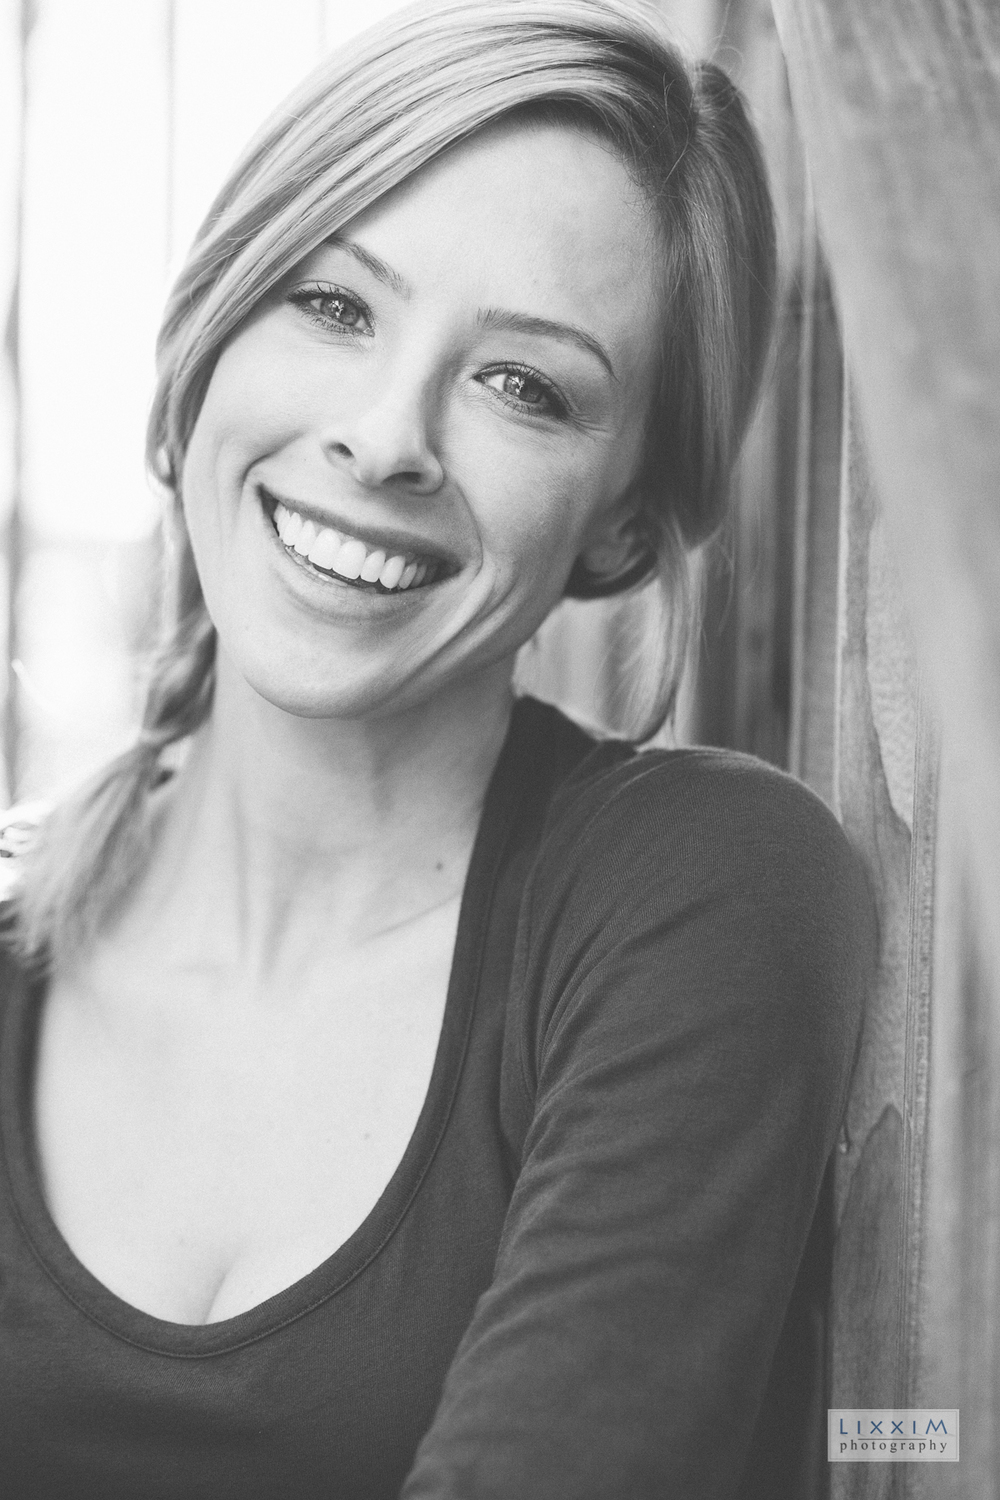 lifestyle-portrait-headshot-women-face-photography-sacramento-california.jpg